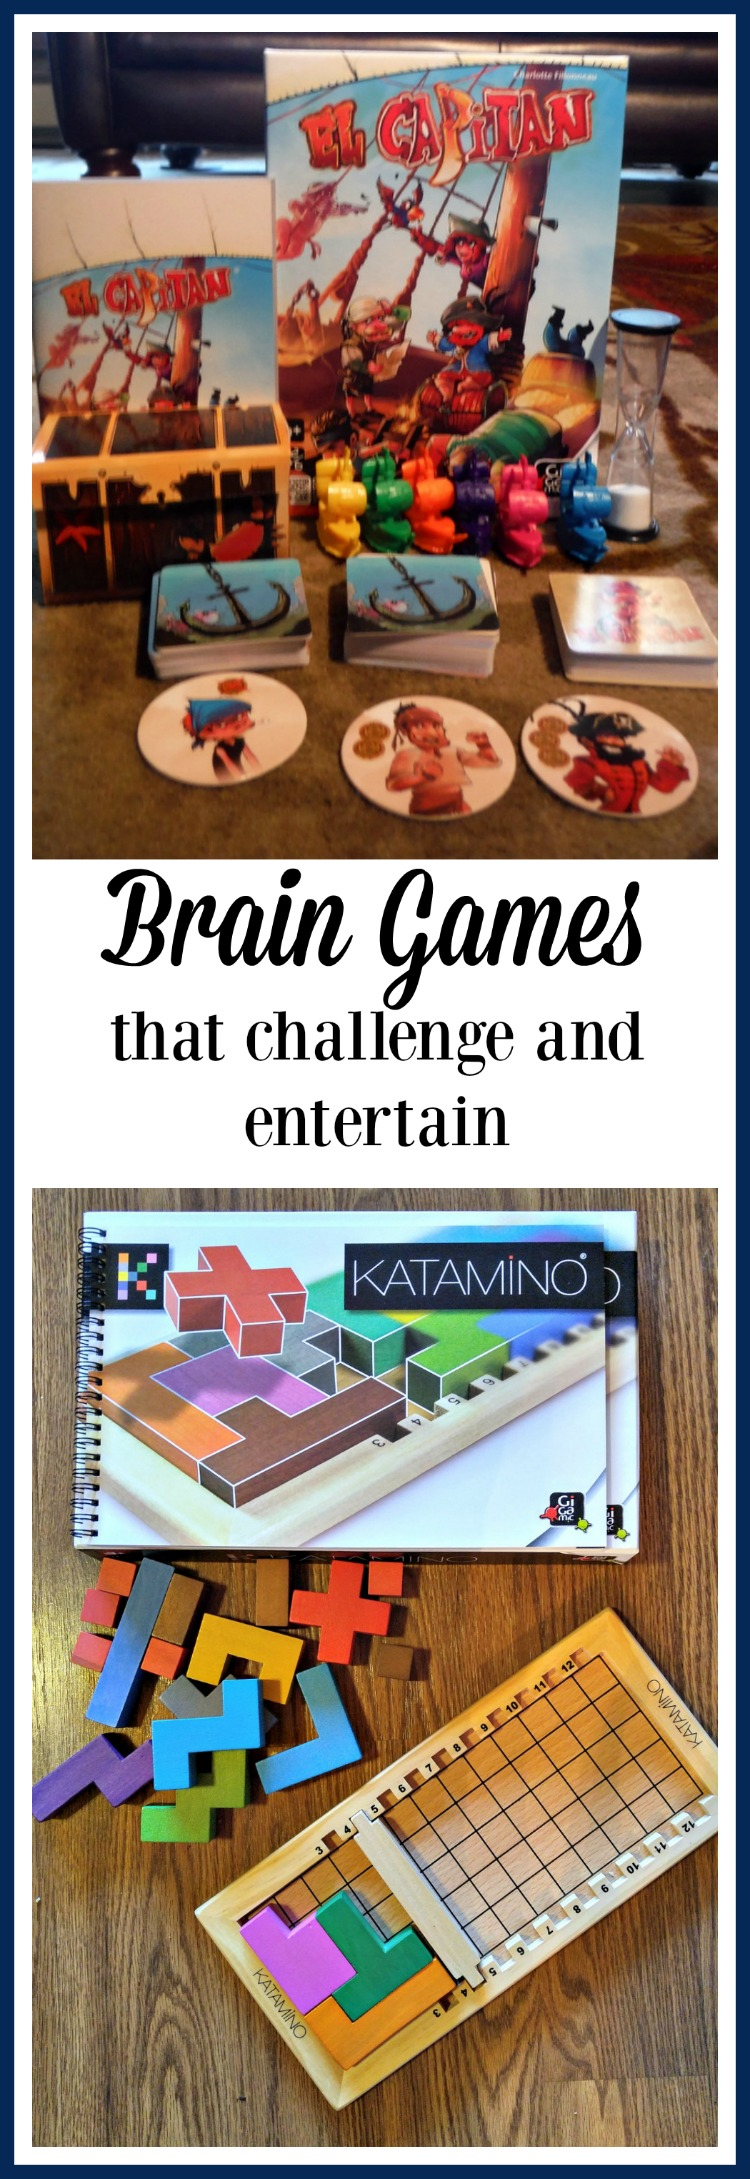 Want some new brain games that both challenge and entertain Check out these from Gigamic